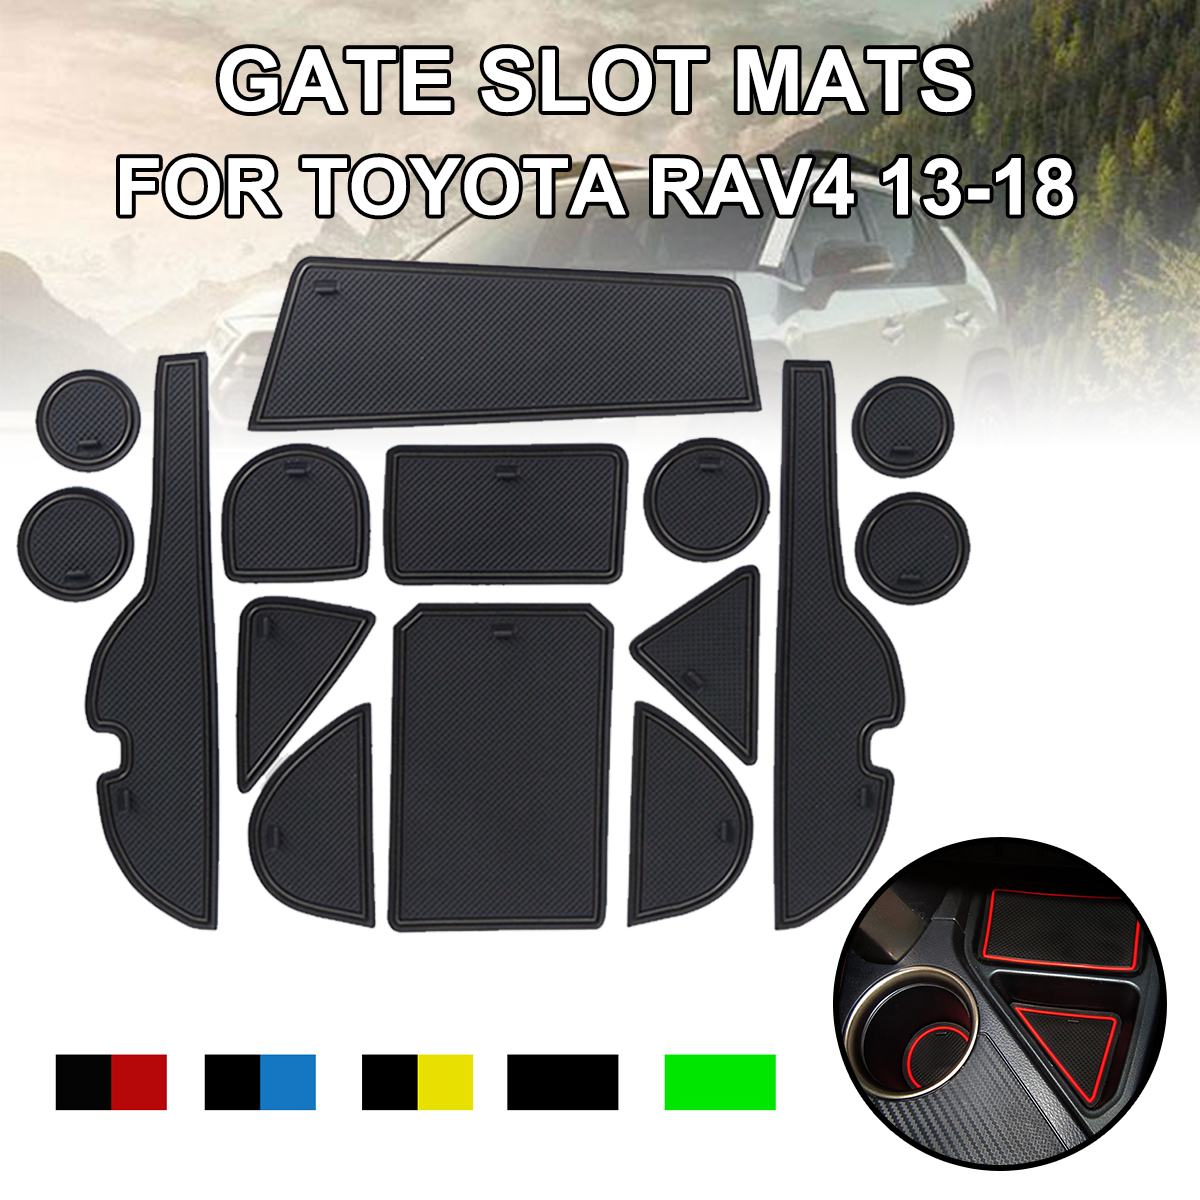 for <font><b>Toyota</b></font> <font><b>RAV4</b></font> 2013-<font><b>2018</b></font> 15pcs Anti-Slip Gate Slot Mat Rubber Coaster <font><b>Accessories</b></font> for RAV 4 2013 2014 2015 2016 2017 <font><b>2018</b></font> image